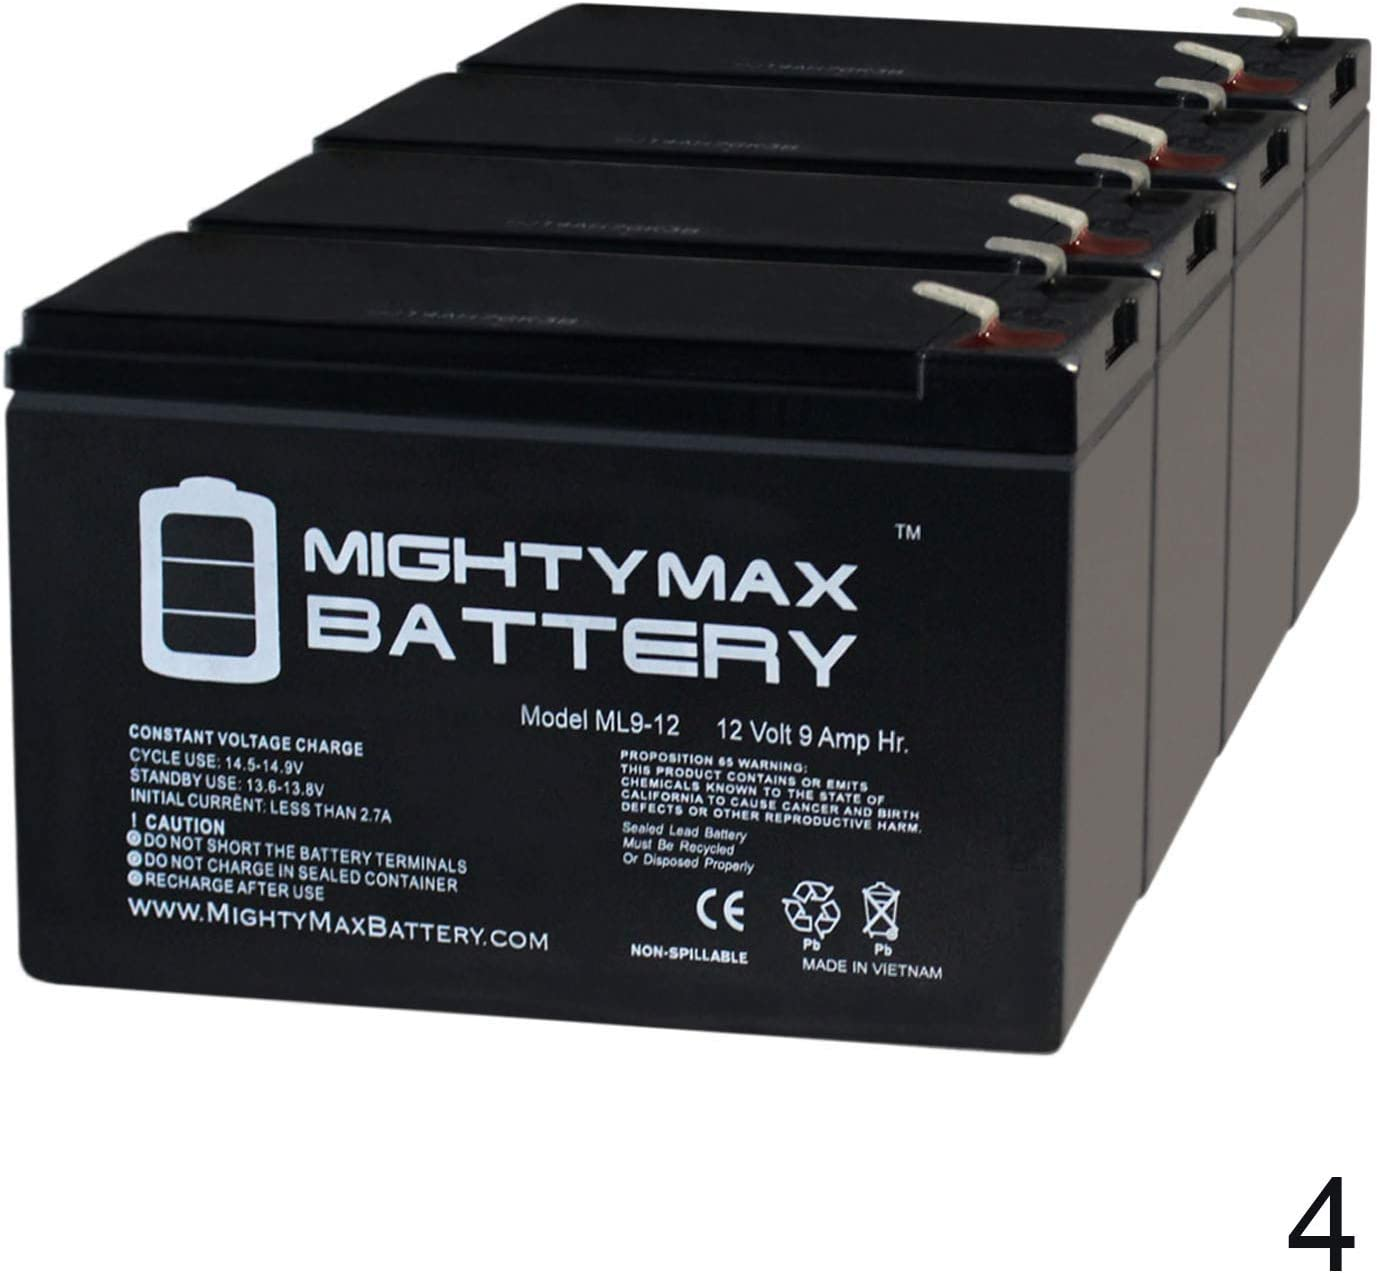 7190432-4 Pack Brand Product Mighty Max Battery 12V 9Ah Battery Replacement for Sonnenschein 1510KW